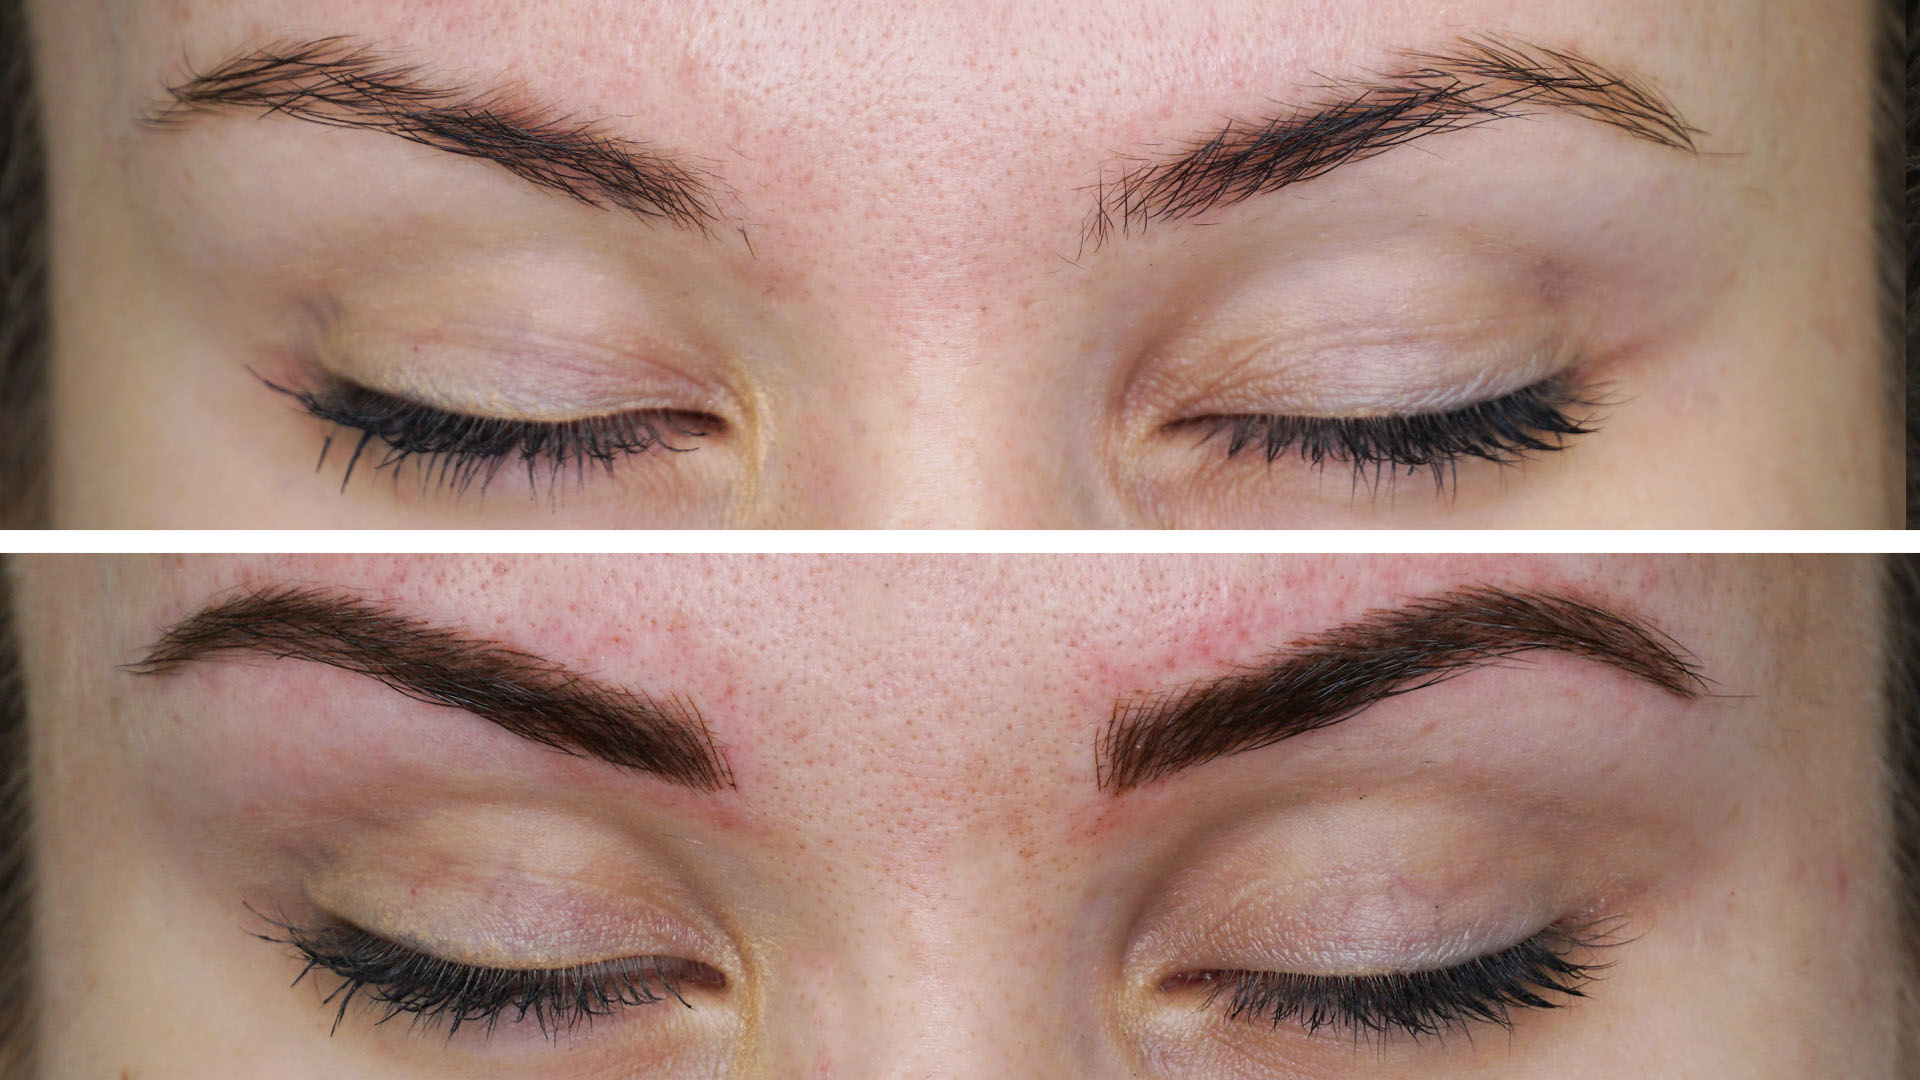 Microblading Eyebrows Before and After Photos